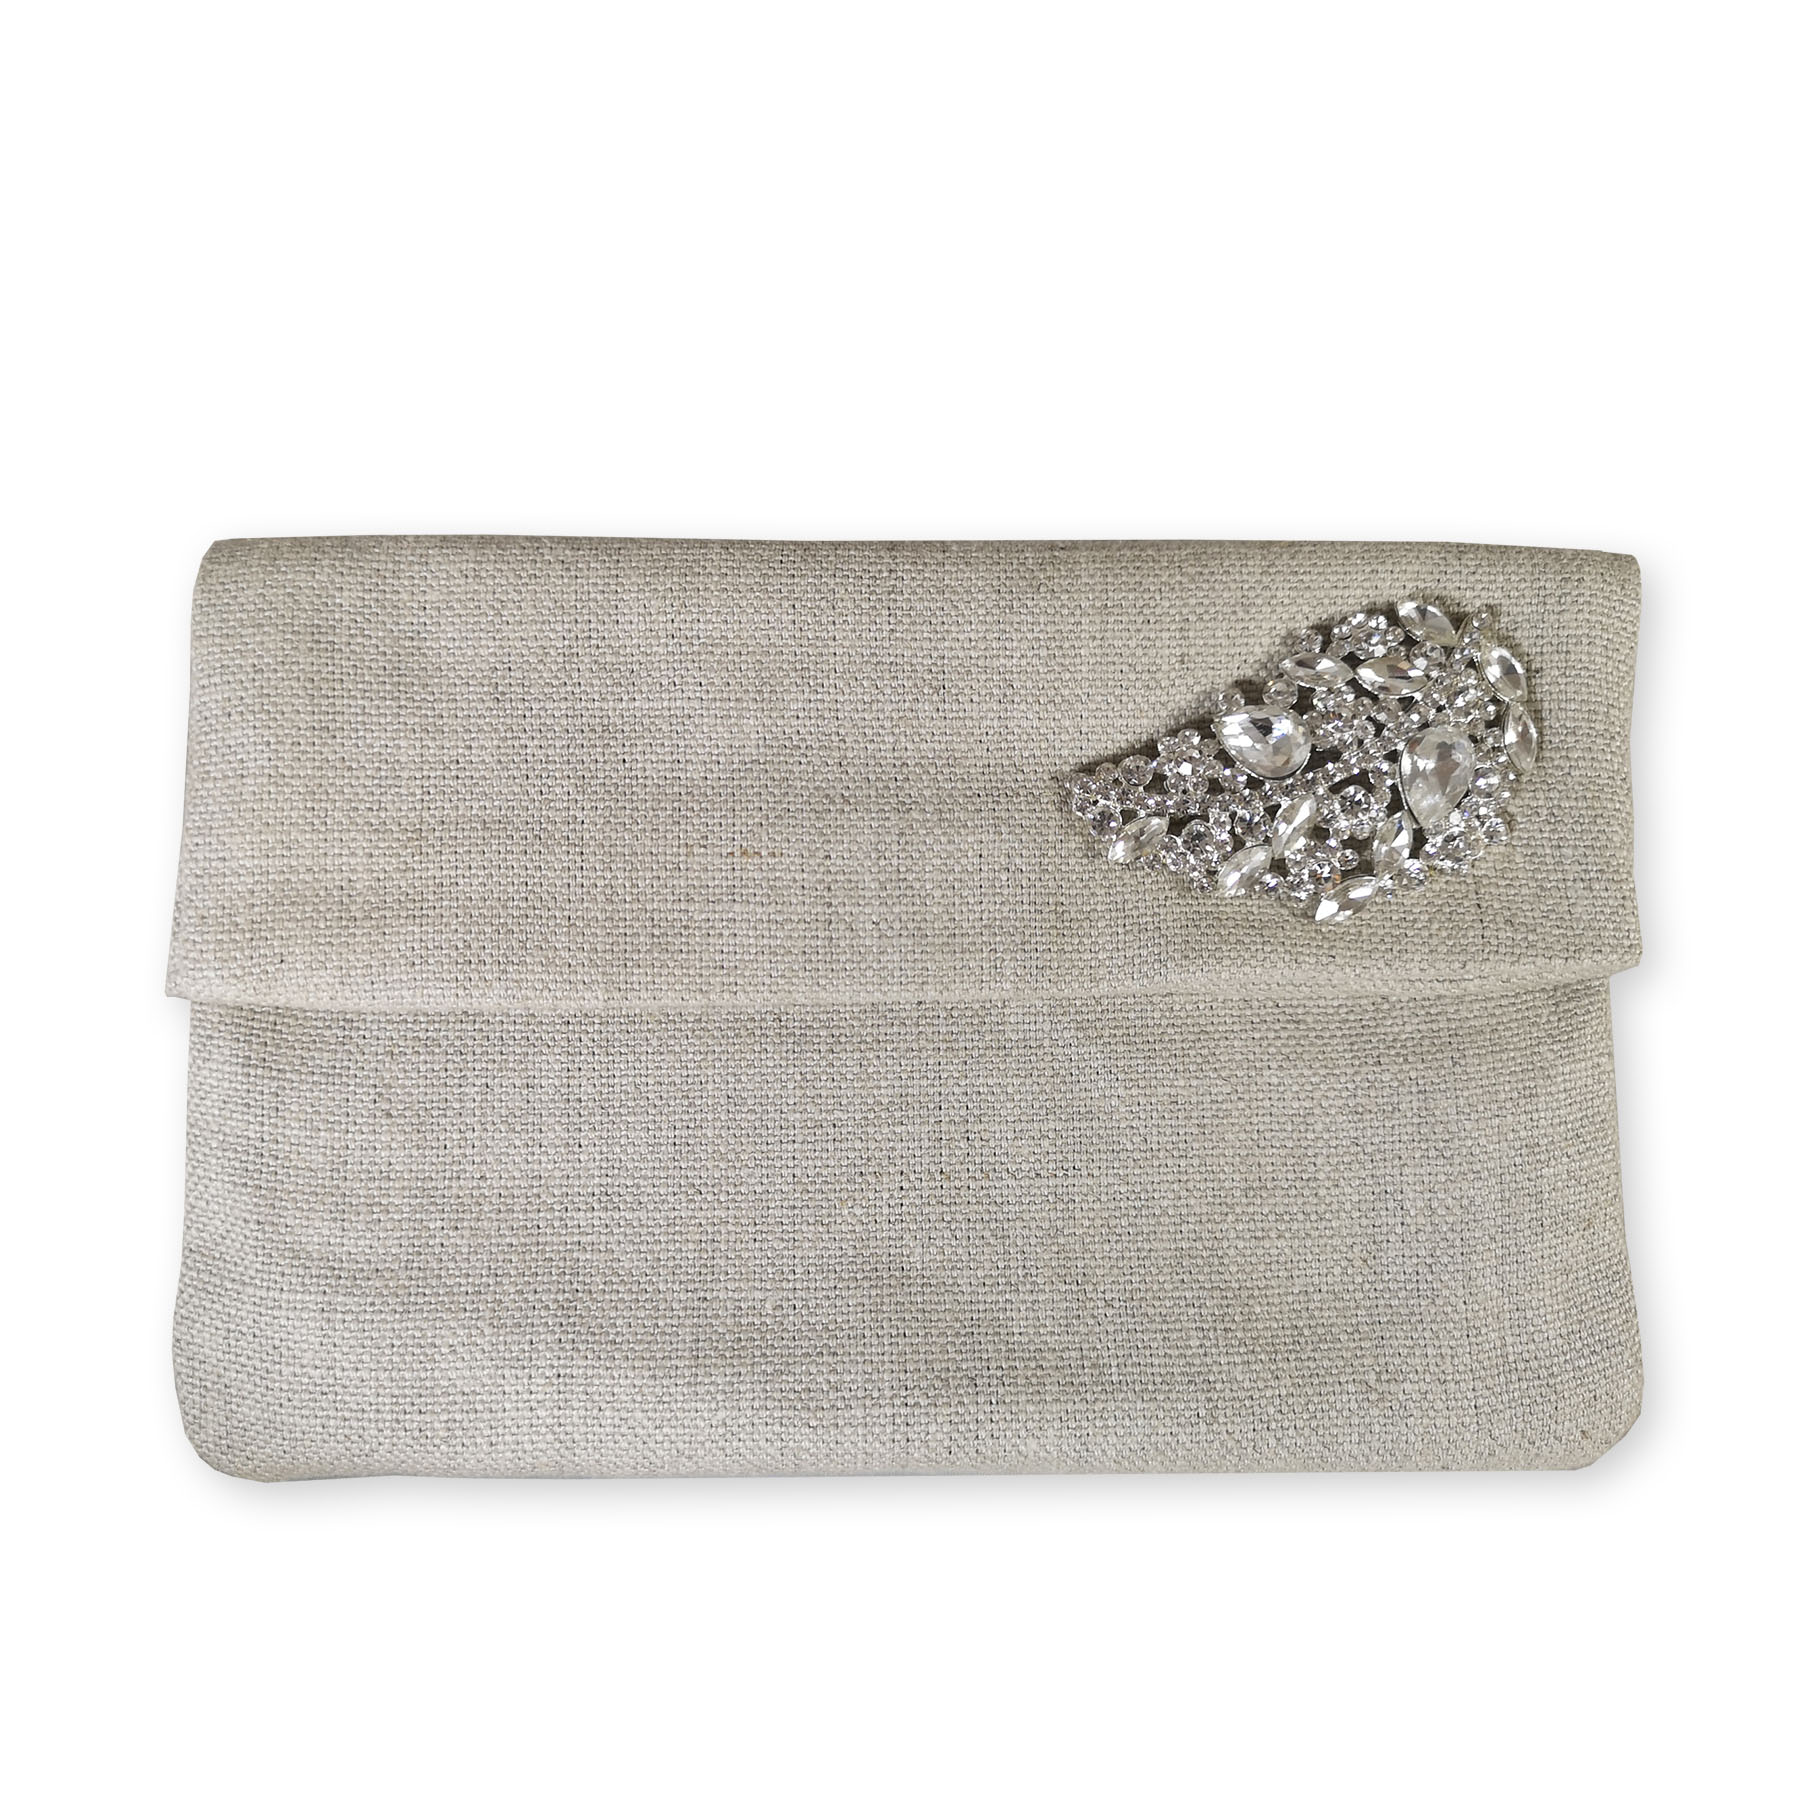 Linen clutch envelope